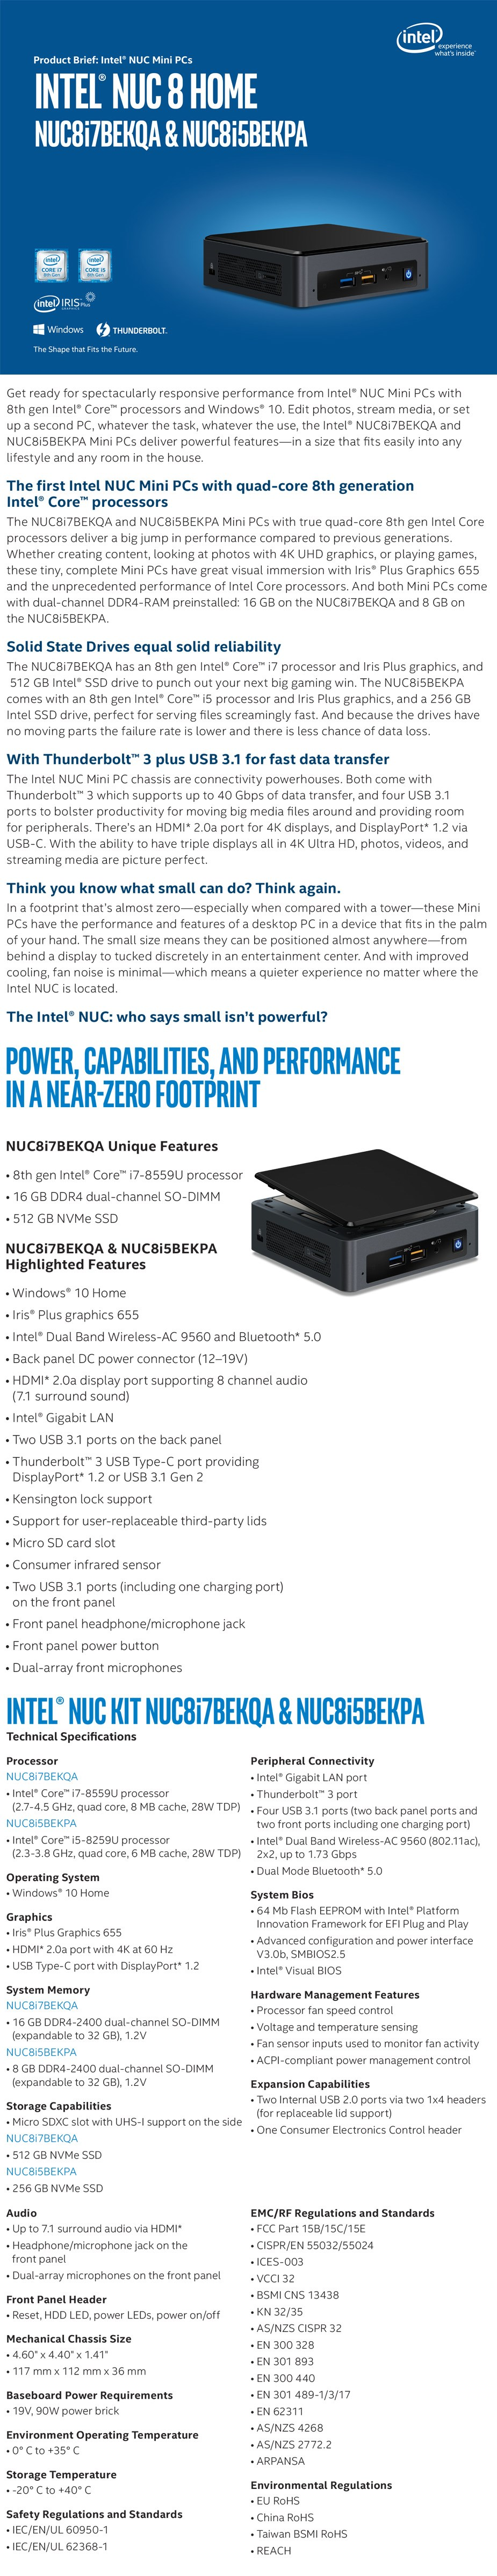 Intel BOXNUC8I5BEKPA4 NUC Mini PC Core i5-8259U 8GB RAM 256GB SSD Win10 Home - Overview 1